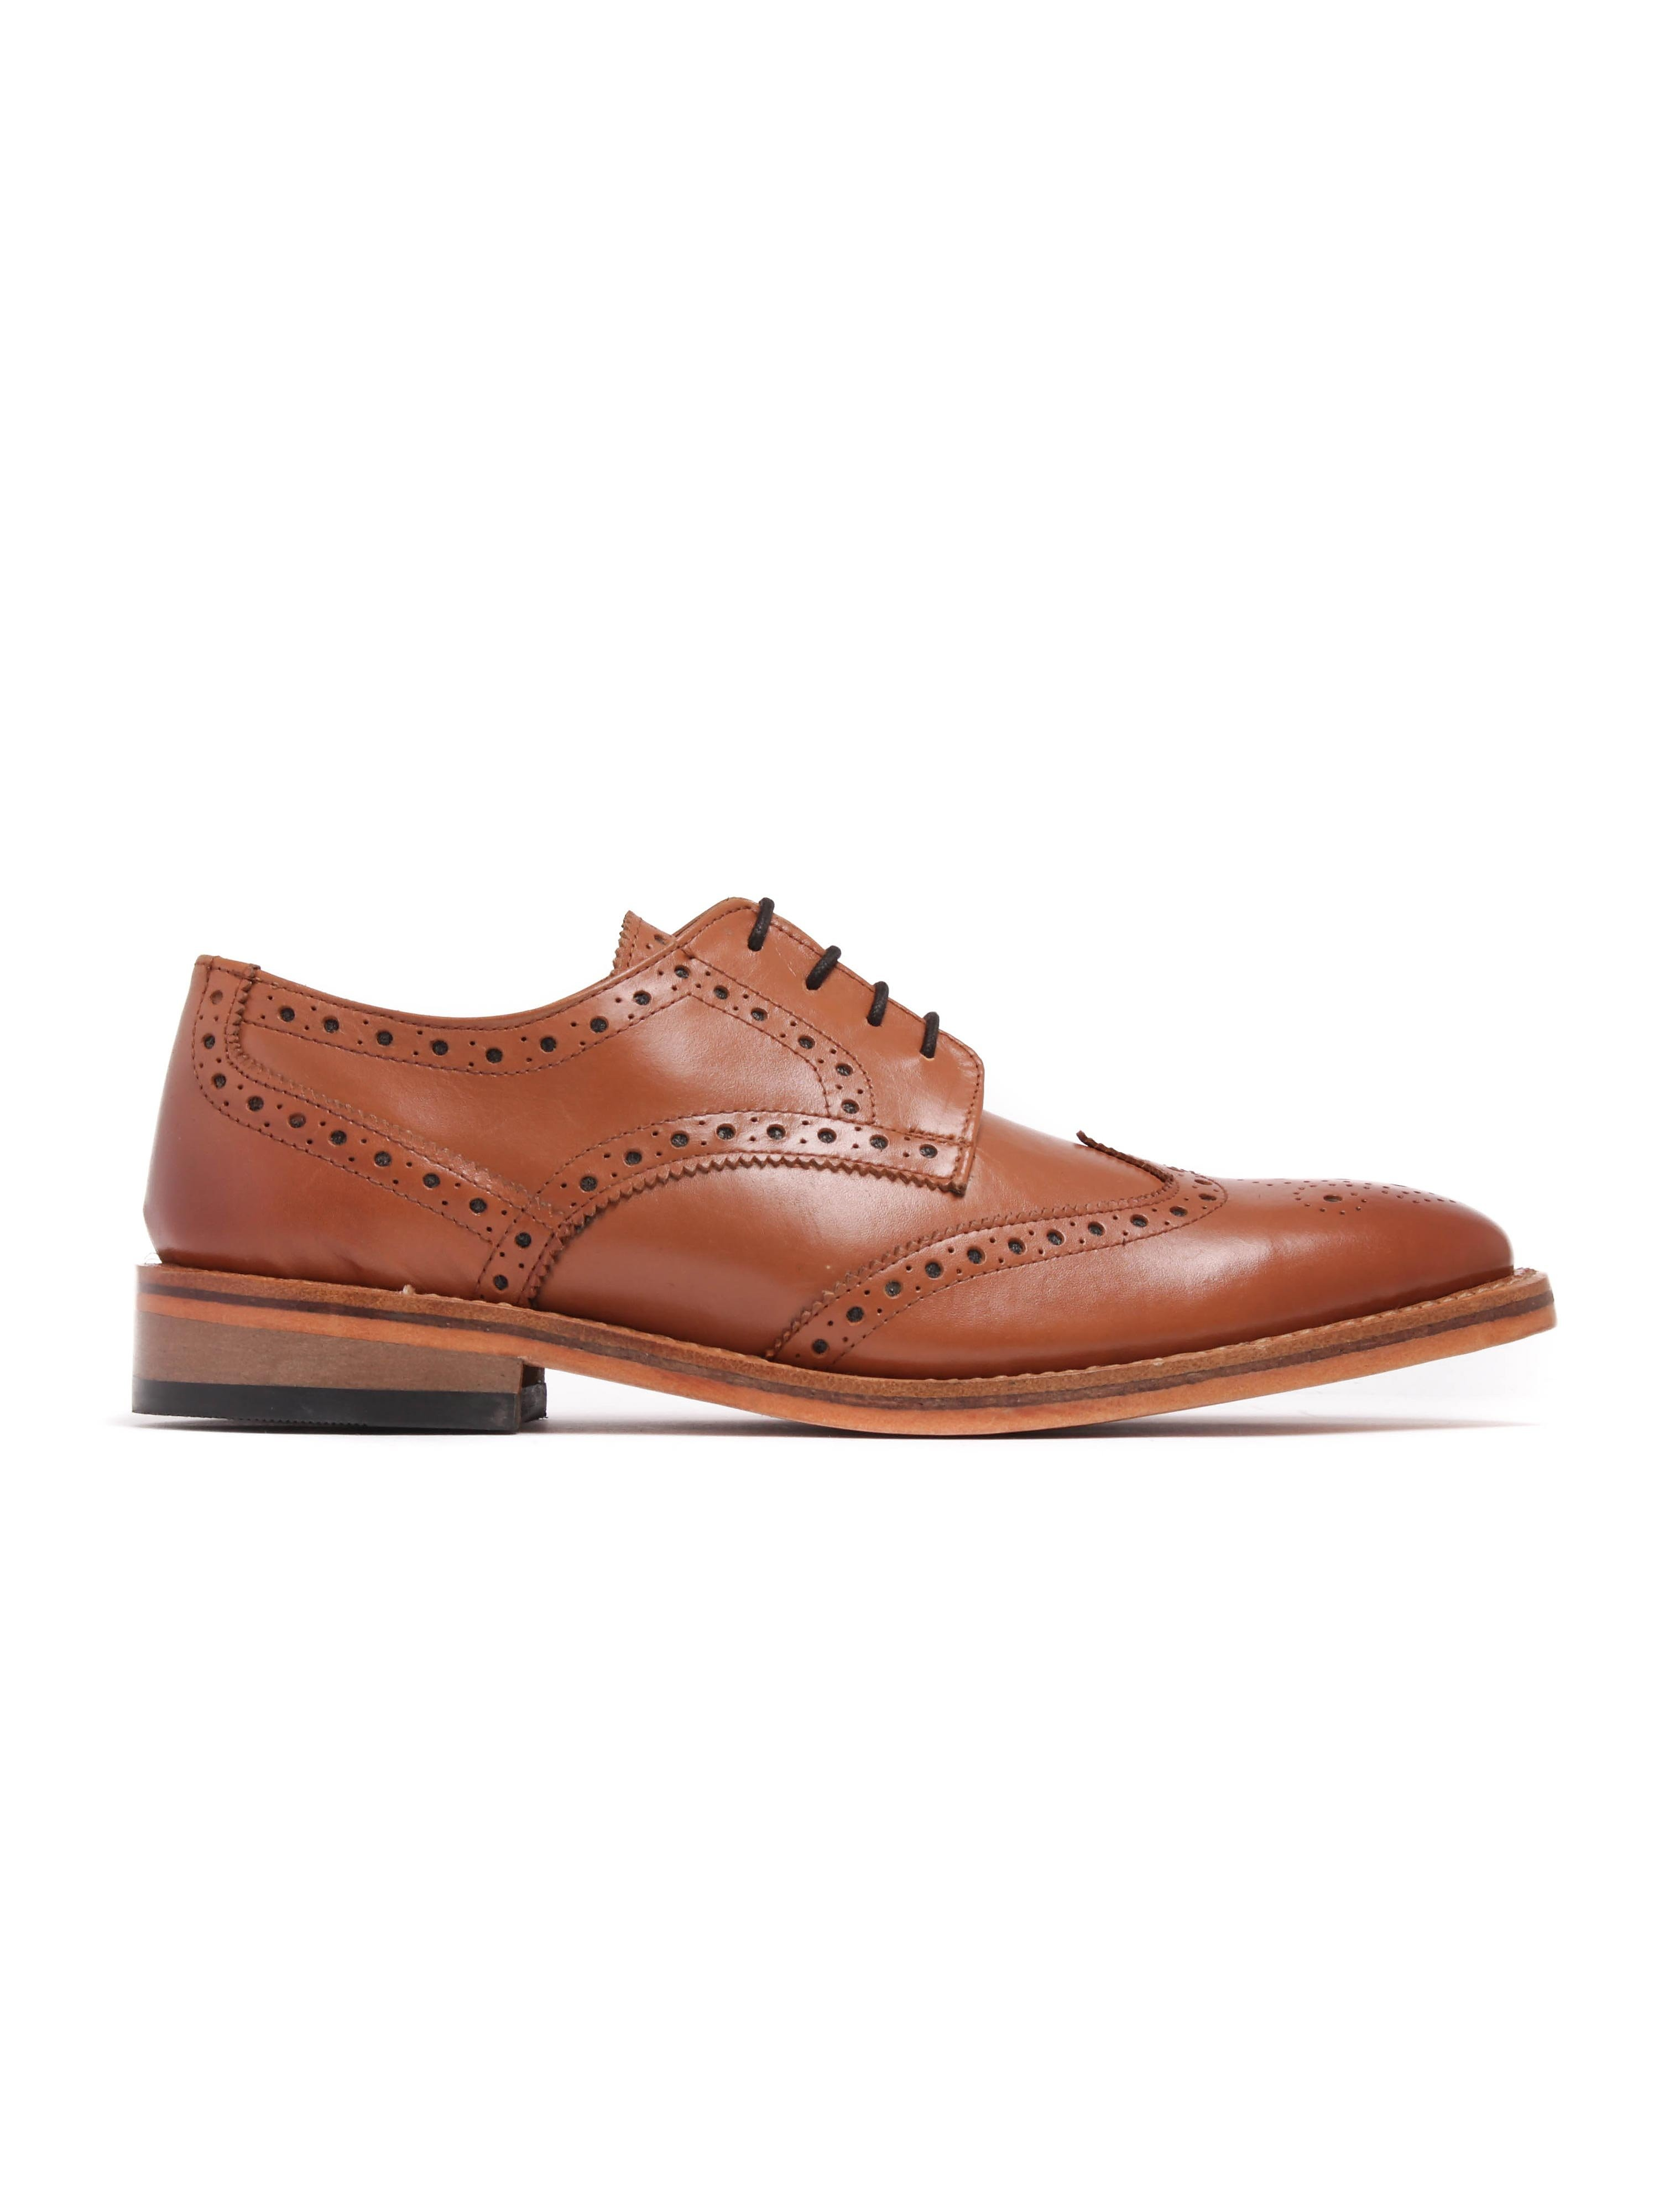 Russell Thomas Mens Surrey Tan Leather Brogues